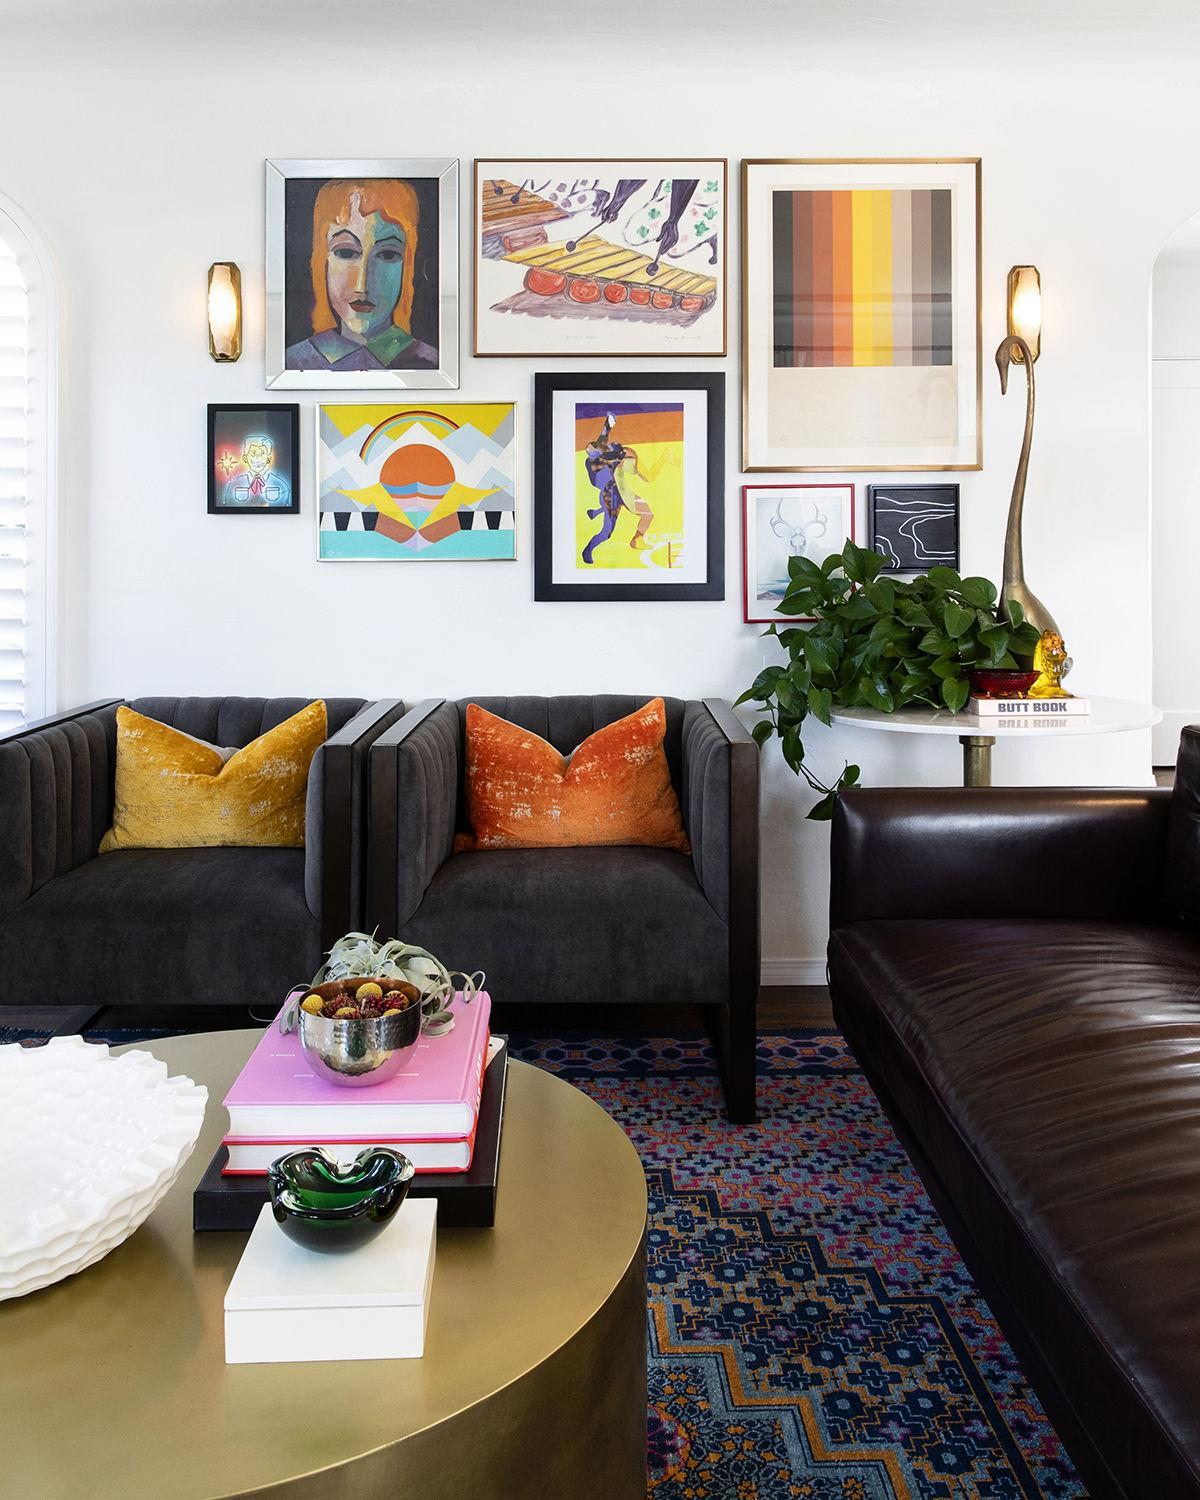 North Park Fun and Funk Home / Gallery Wall